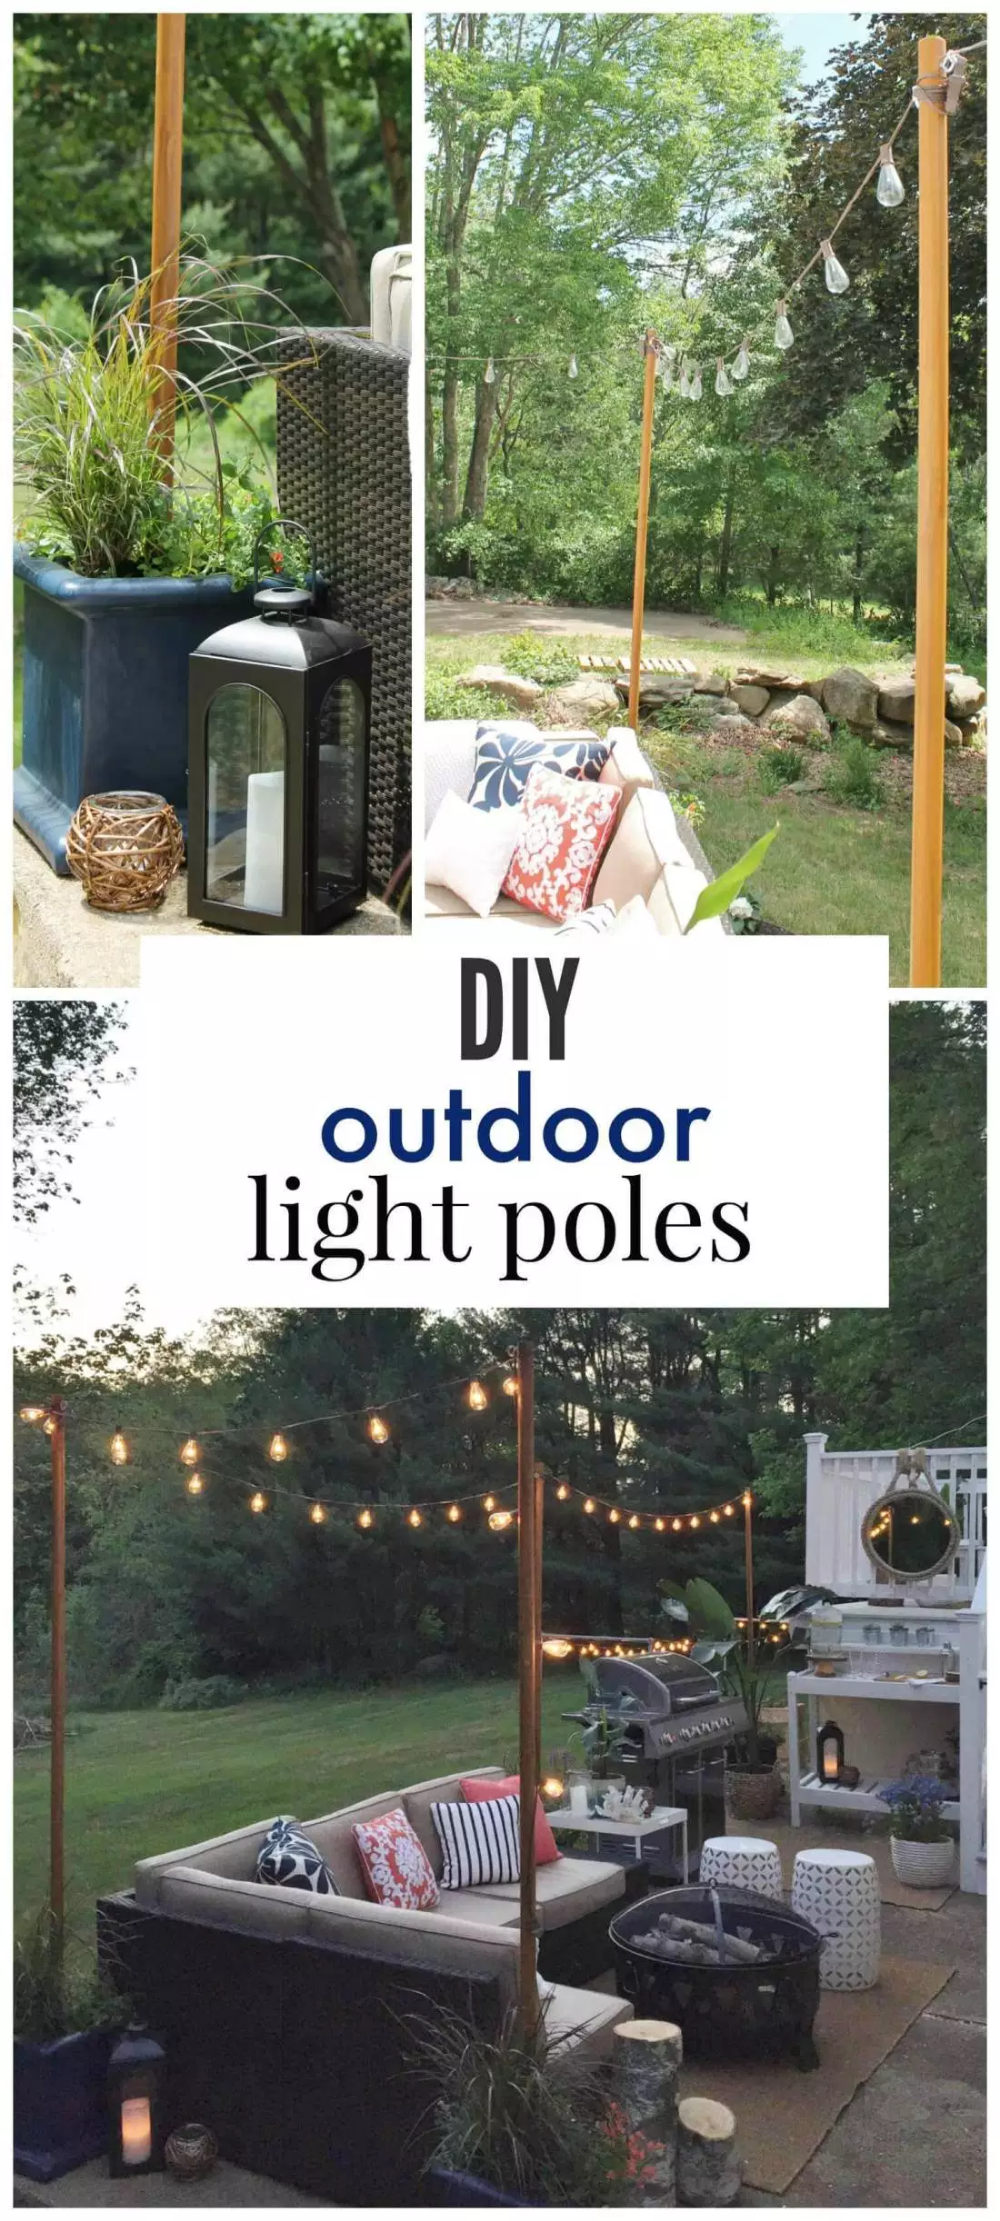 24 Awesome Diy Outdoor Projects To Make Your Backyard More Fun Diy Outdoor Lighting Diy Patio Outdoor Diy Projects